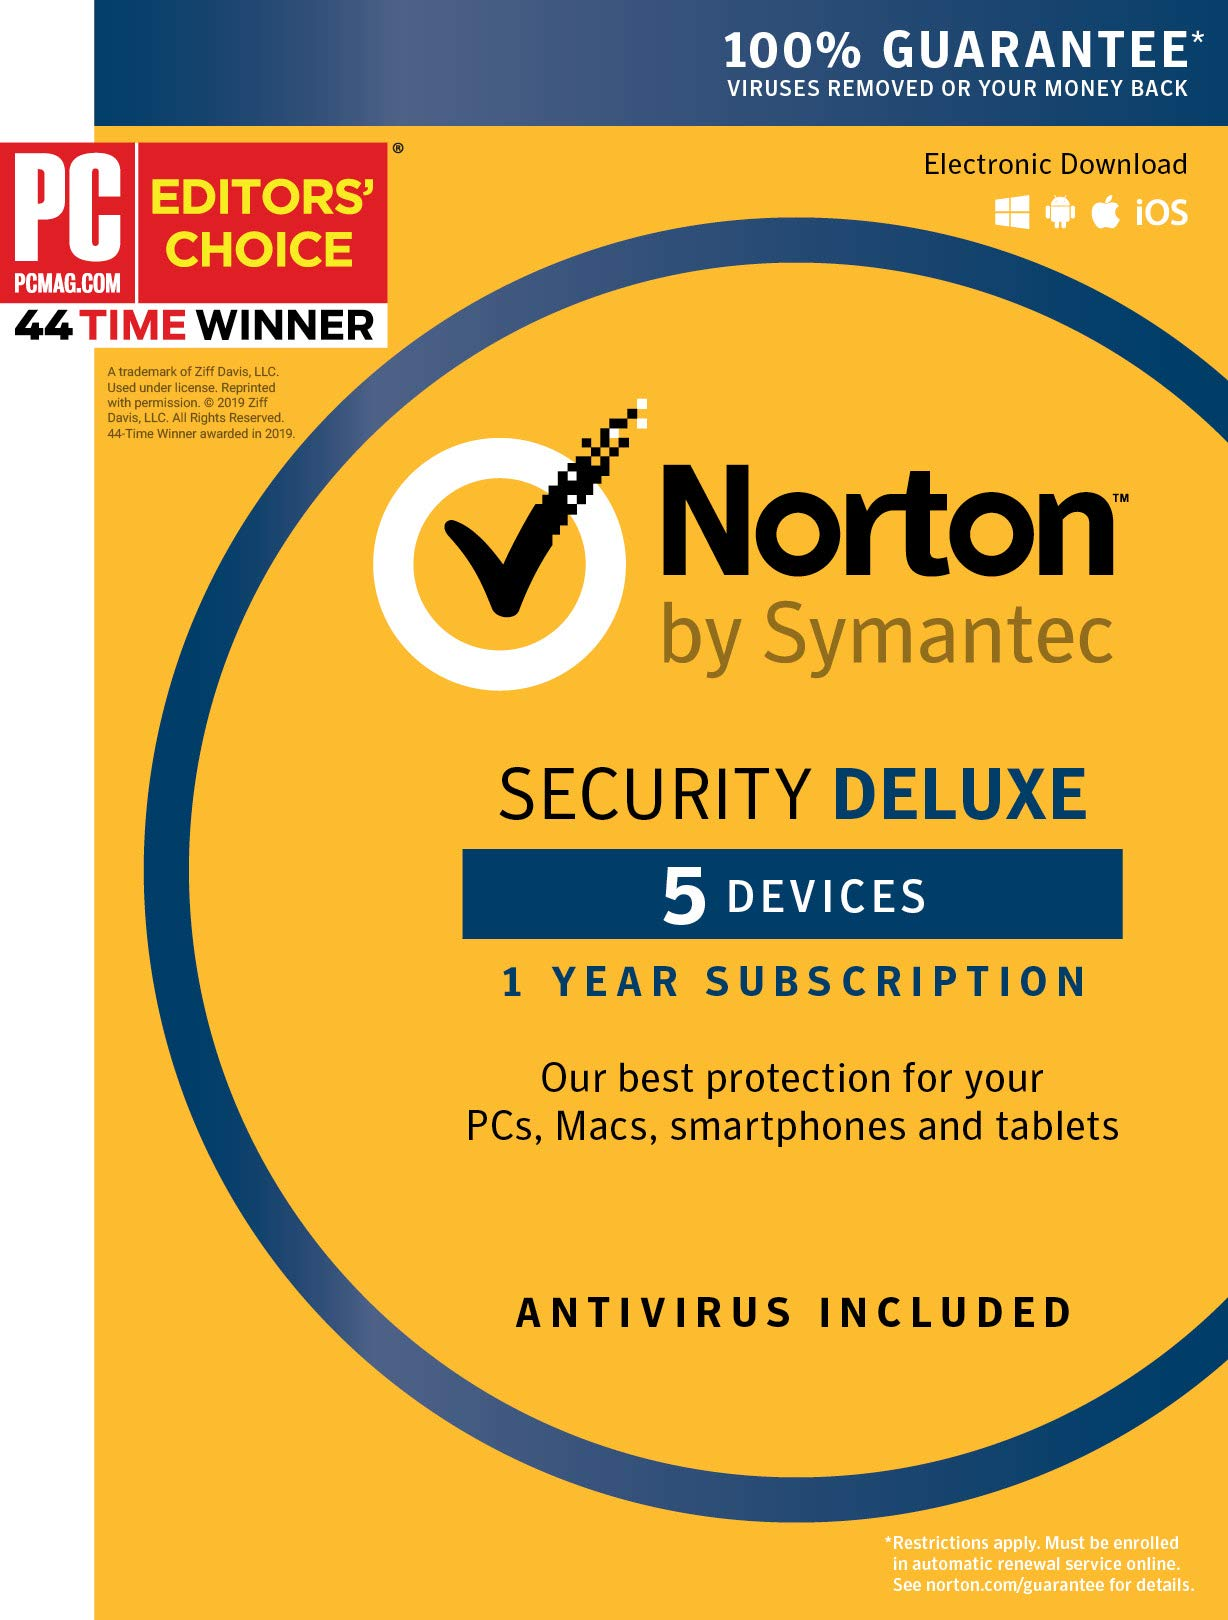 Symantec Norton Security Deluxe - 5 Devices - 1 Year Subscription [PC/Mac/Mobile Key Card] by Symantec